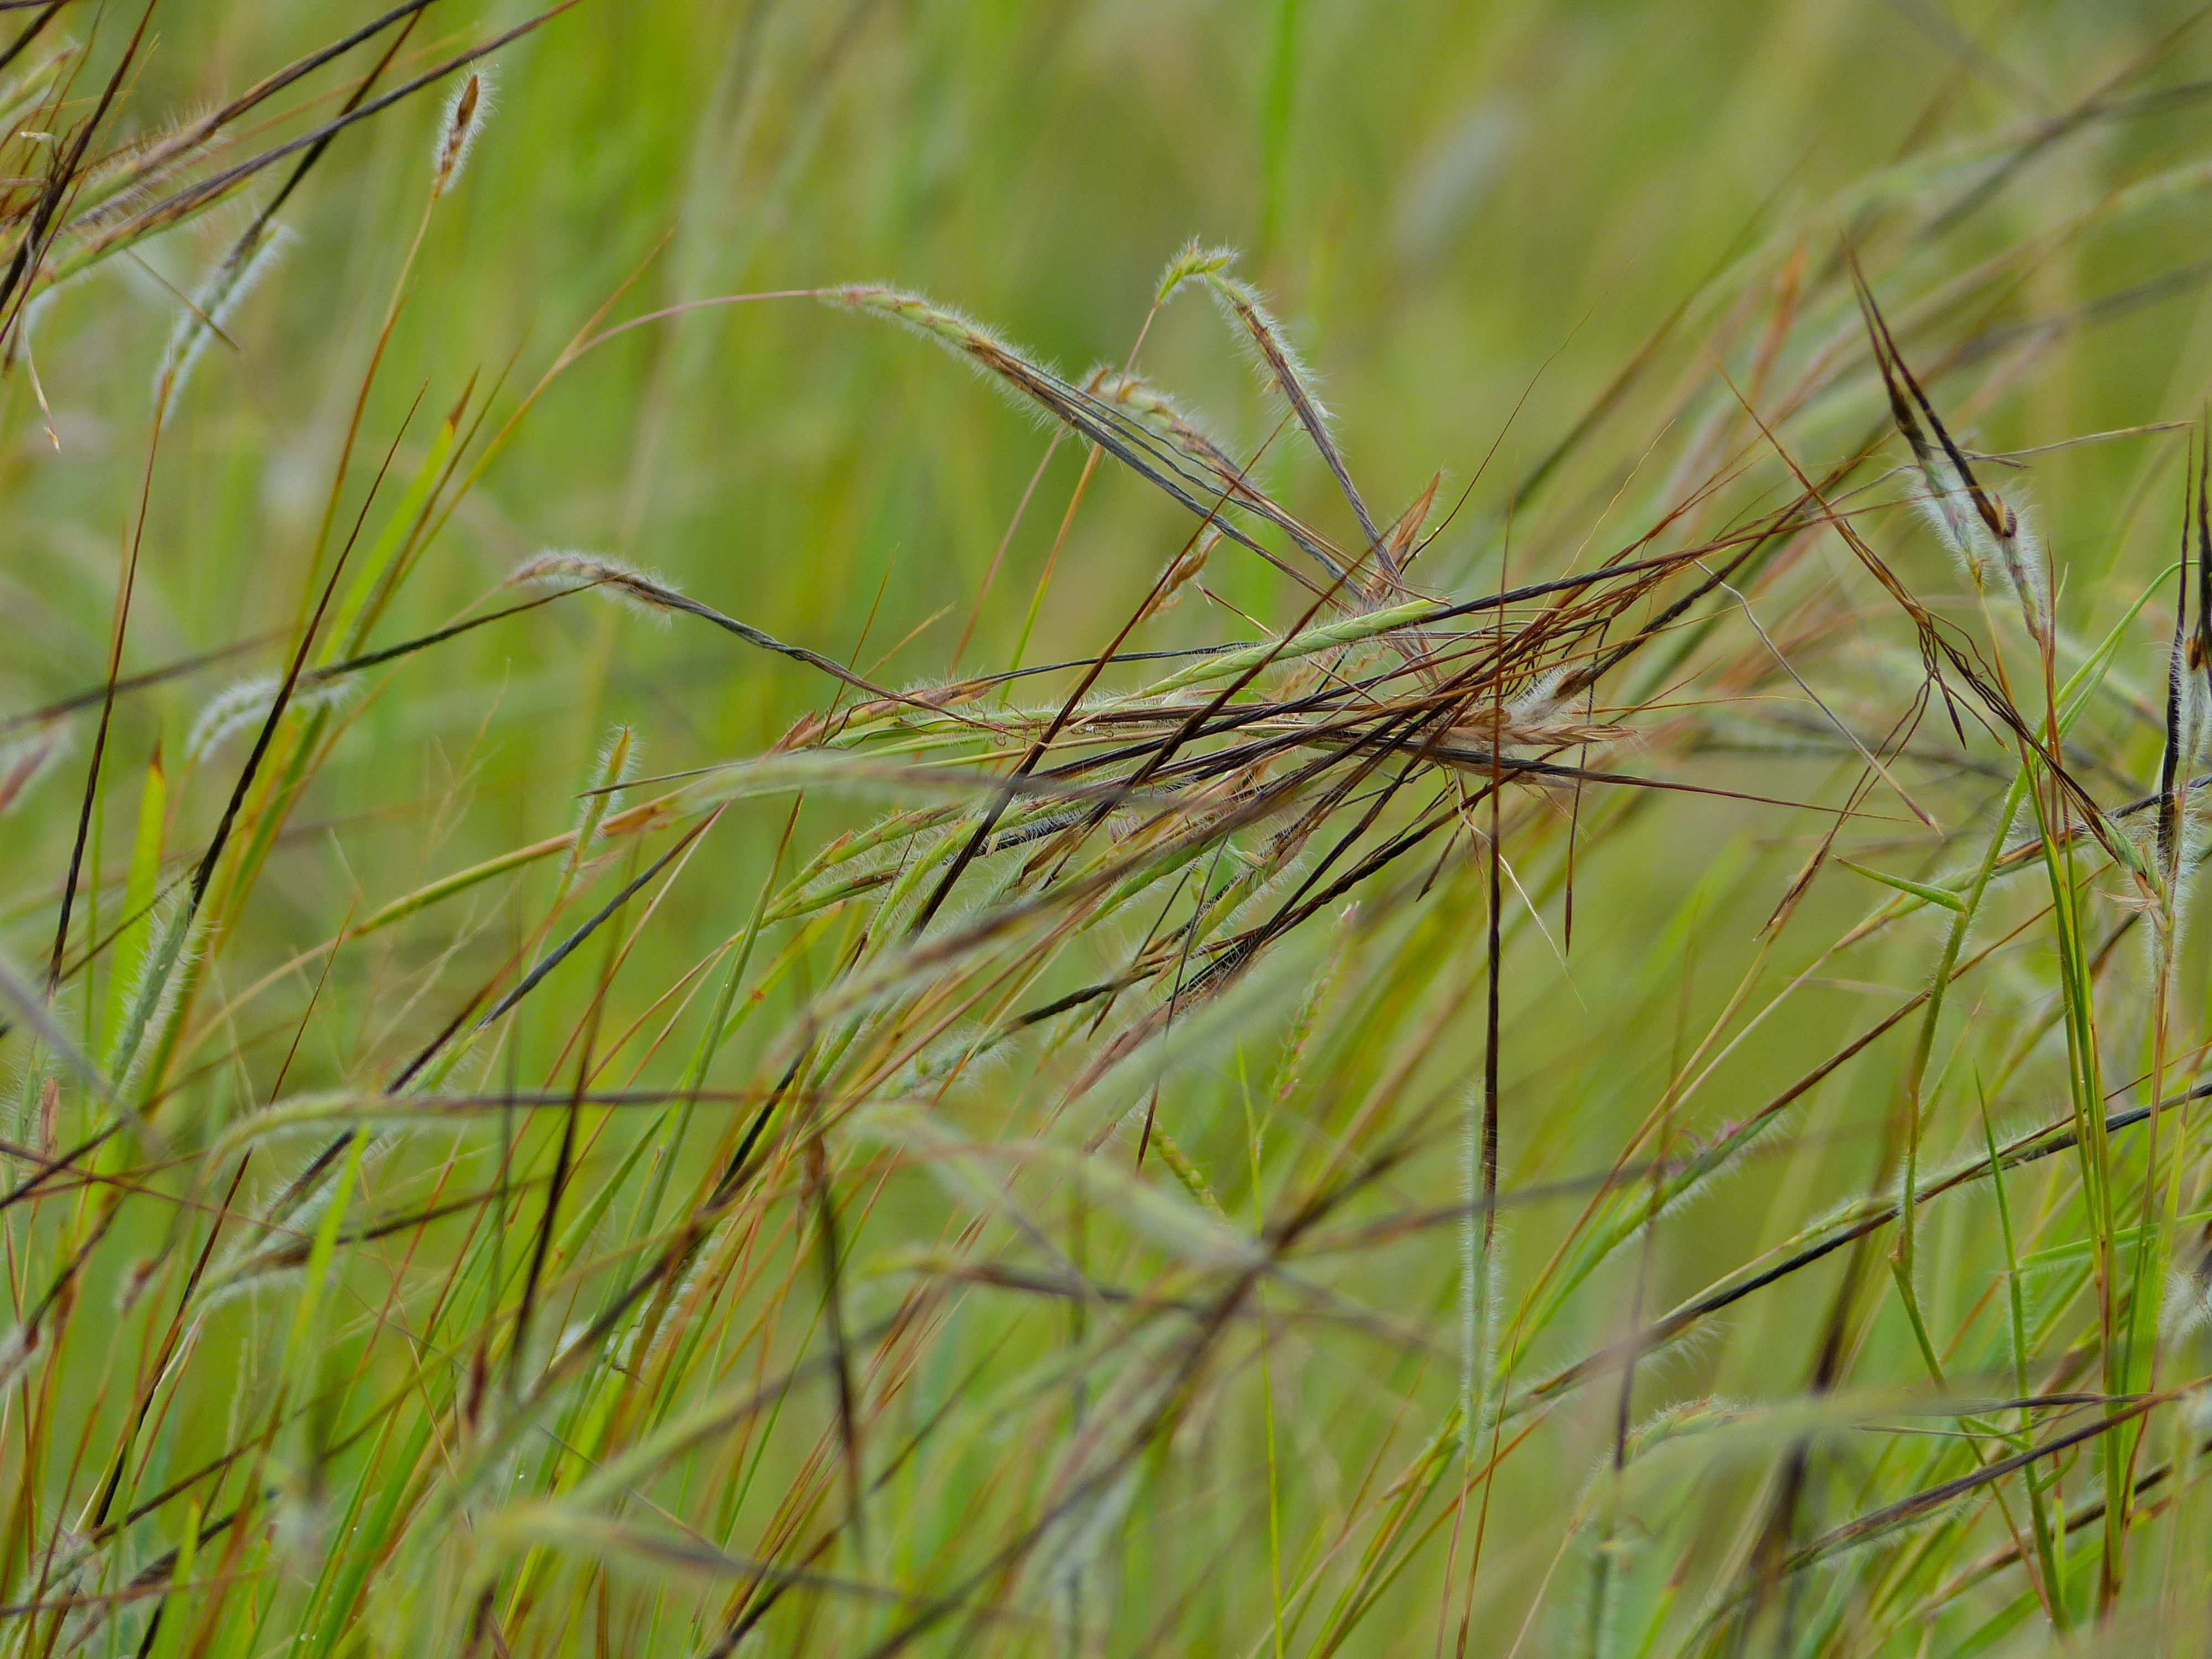 FileSpear Grass Heteropogon Contortus Intertwined Awns 12818793383